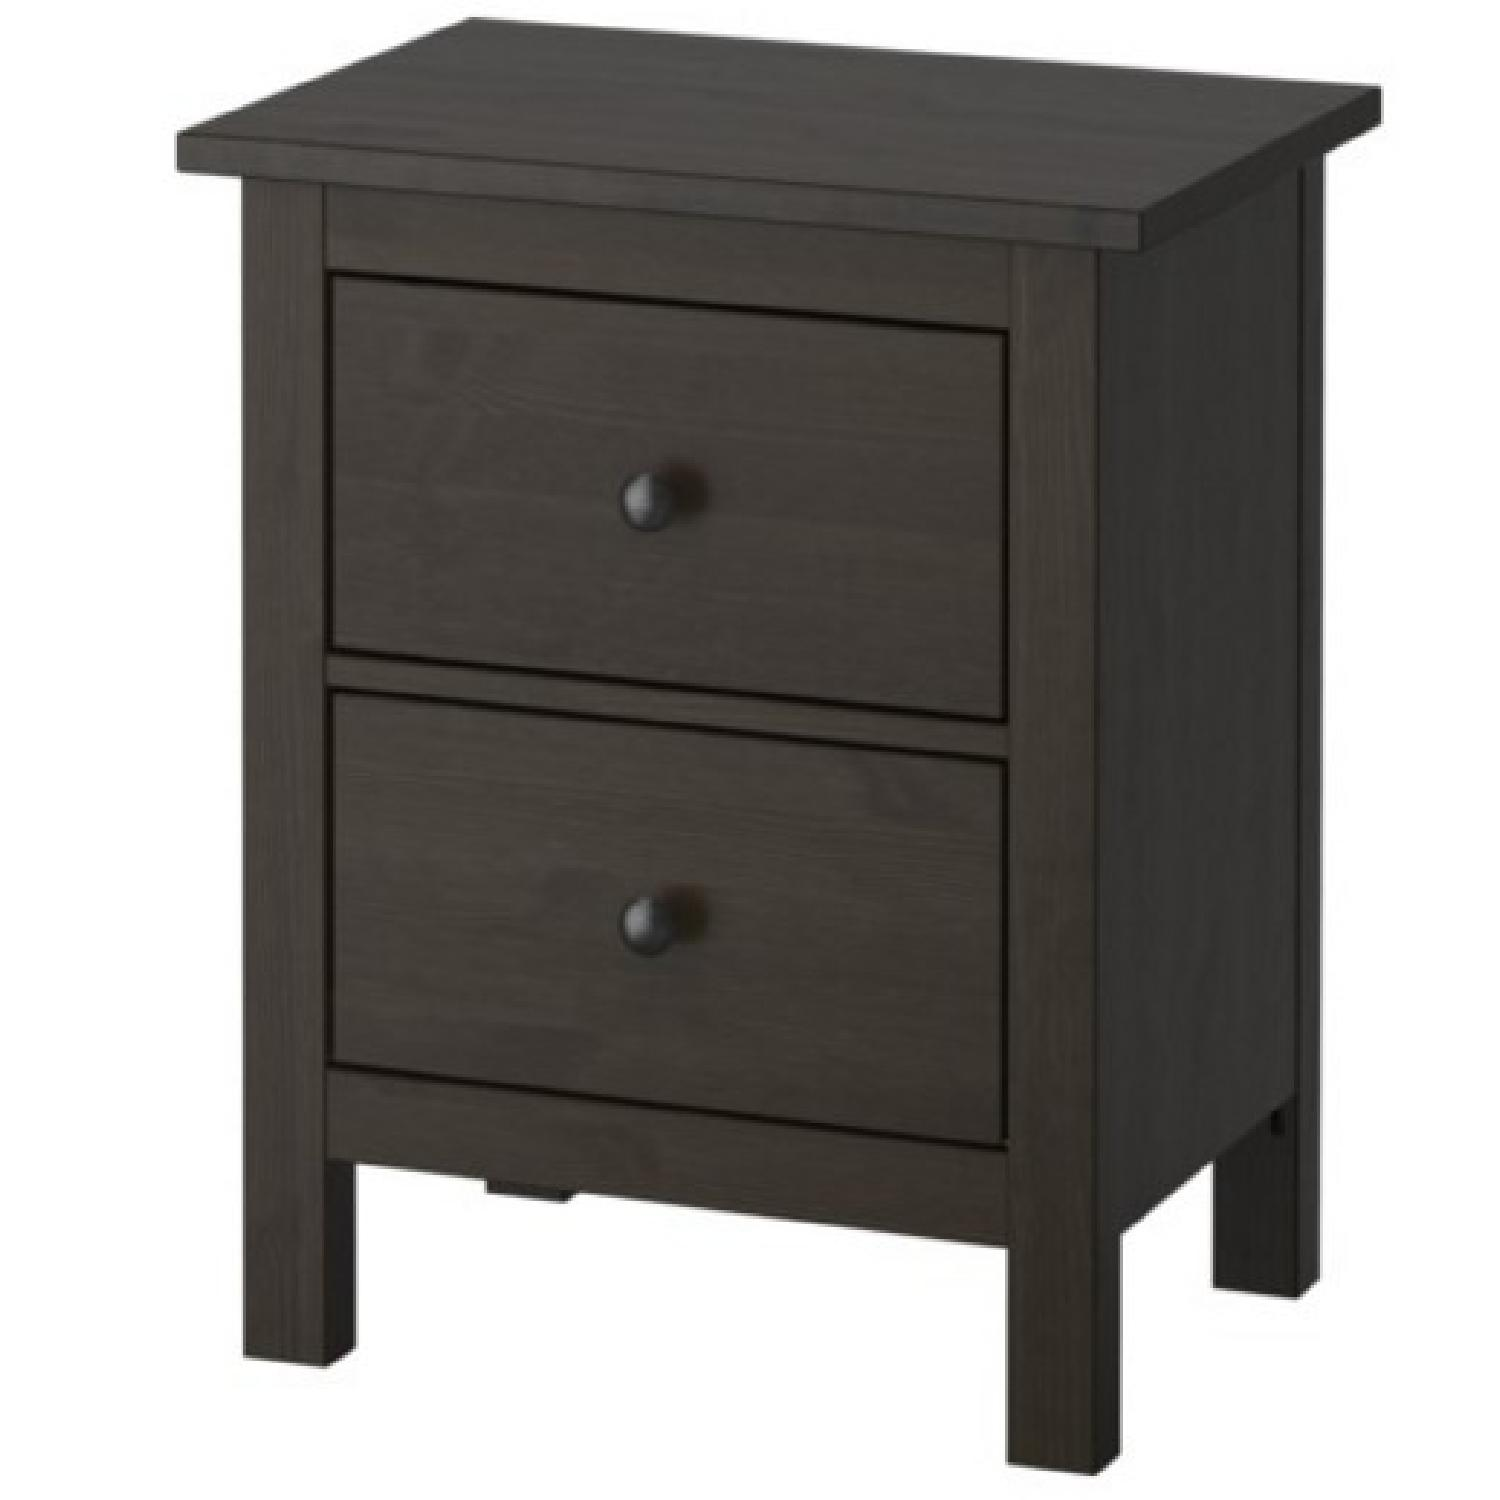 Ikea Hemnes 2 Drawer Chest in Black Brown AptDeco : 1500 1500 frame 0 from www.aptdeco.com size 1500 x 1500 jpeg 80kB